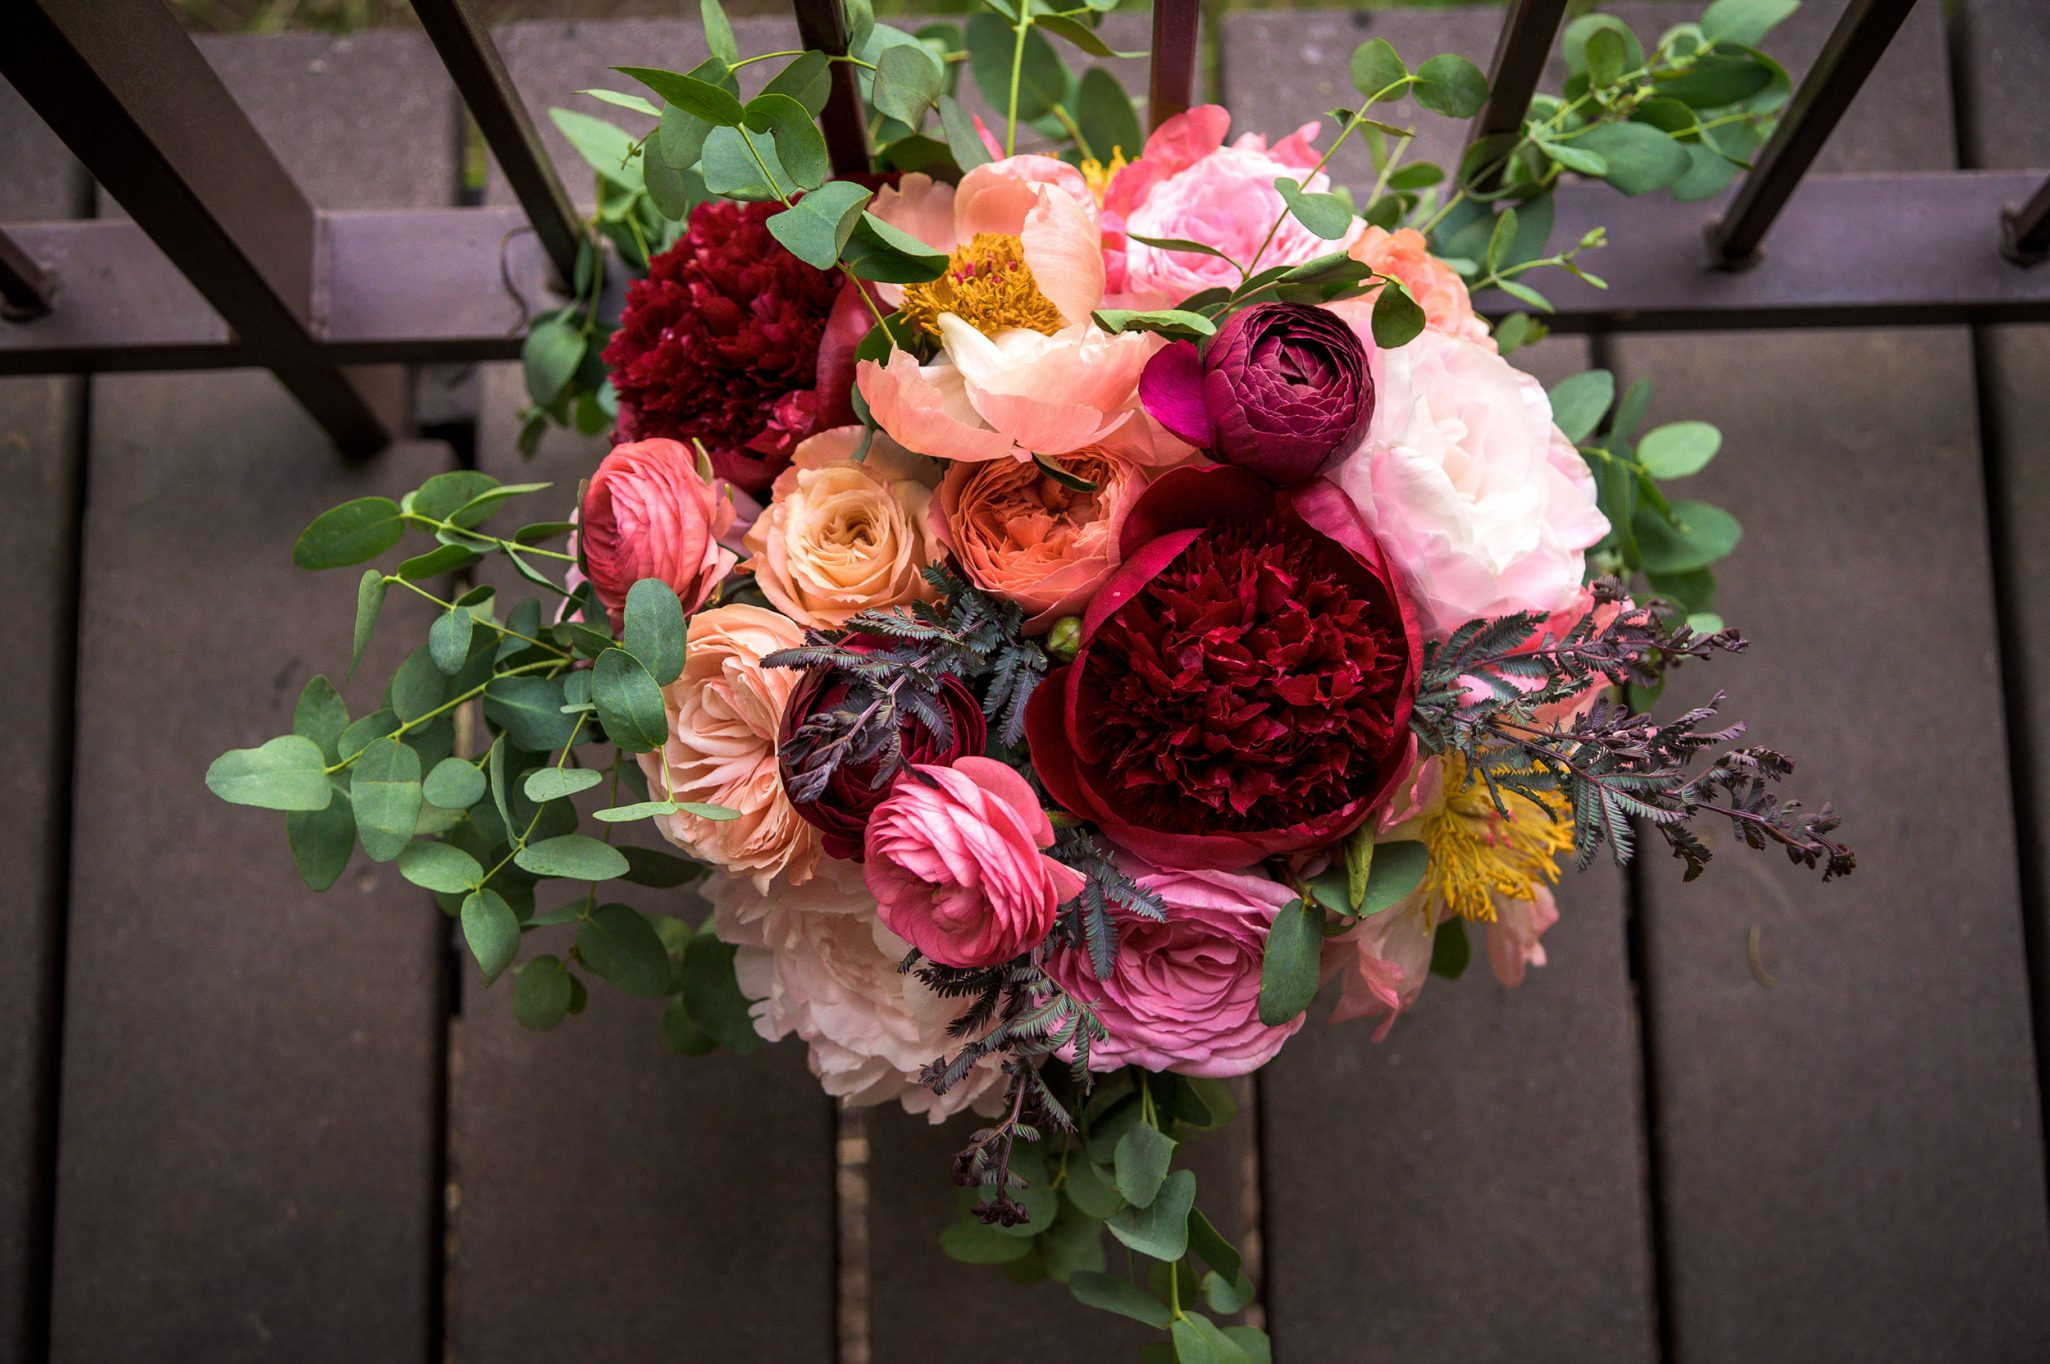 Wedding flowers by Addela Floral, Durango, Colorado